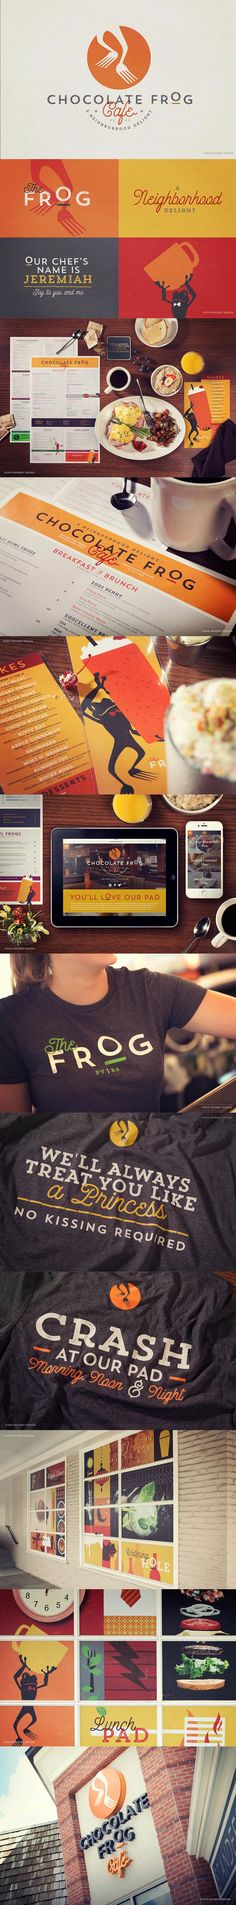 Branding, Menu, Signage, Web, Wearables and Website for the restaurant Chocolate Frog Cafe.